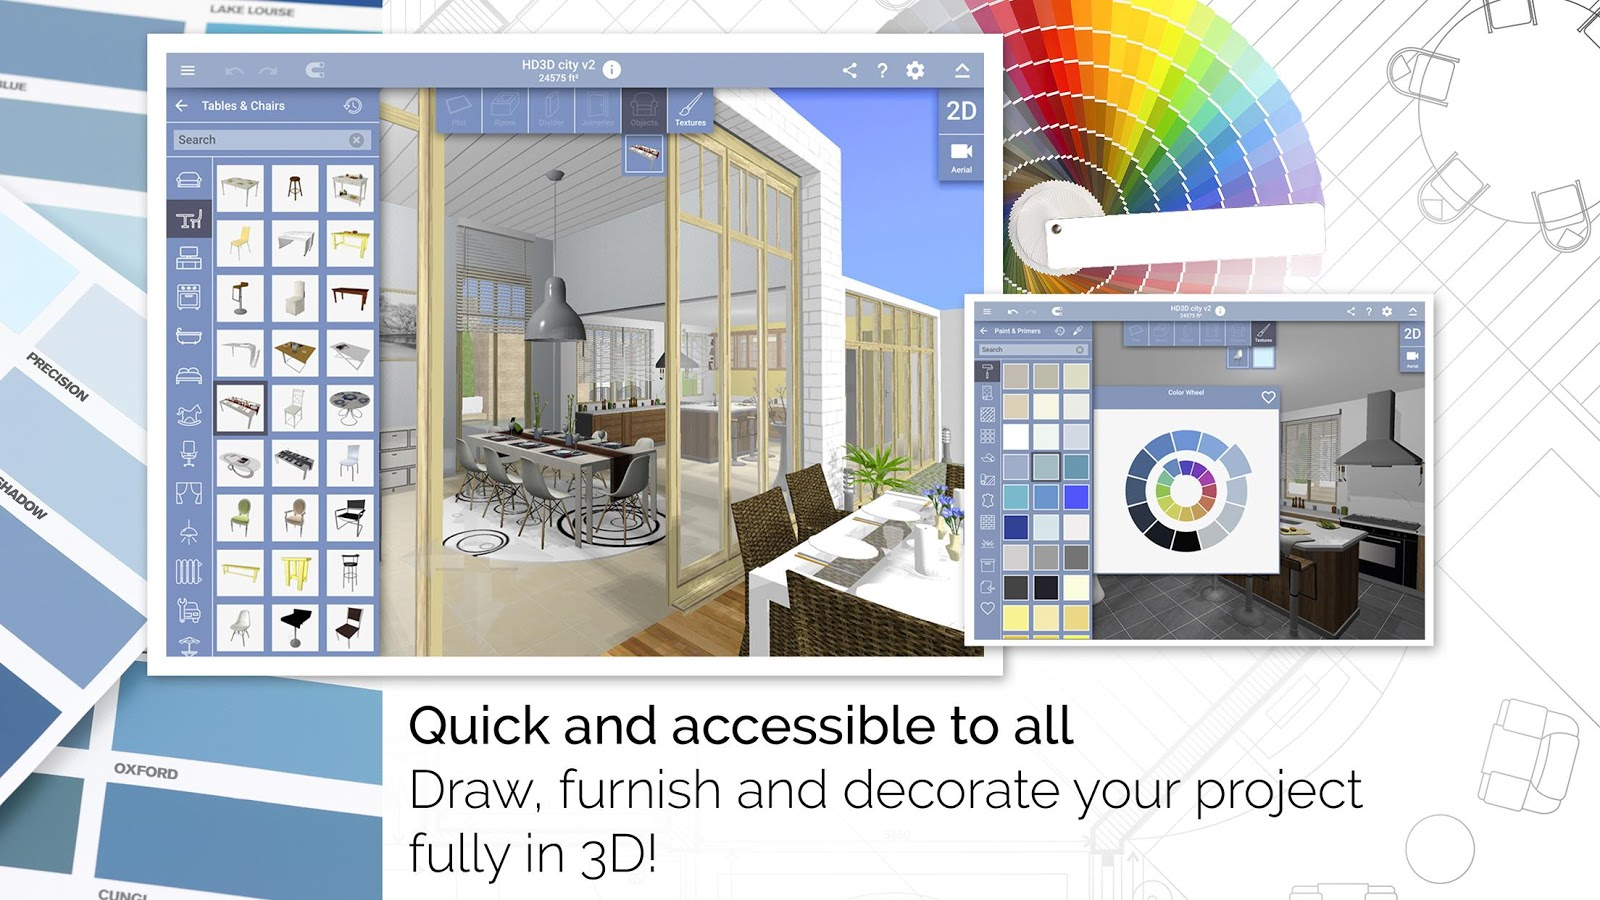 Home design 3d freemium android apps on google play for Interior design shopping app